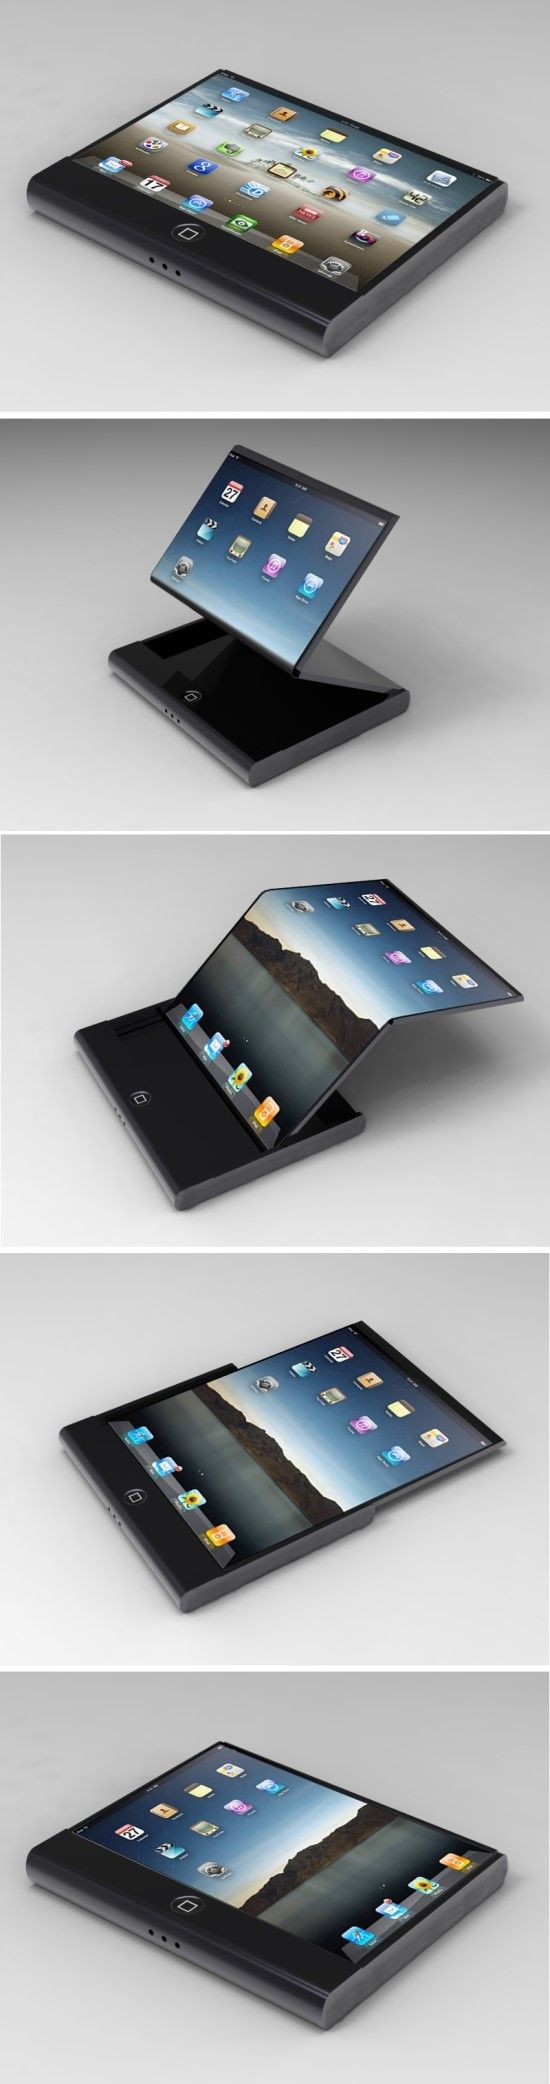 iPhone with Flexible Display Concepts